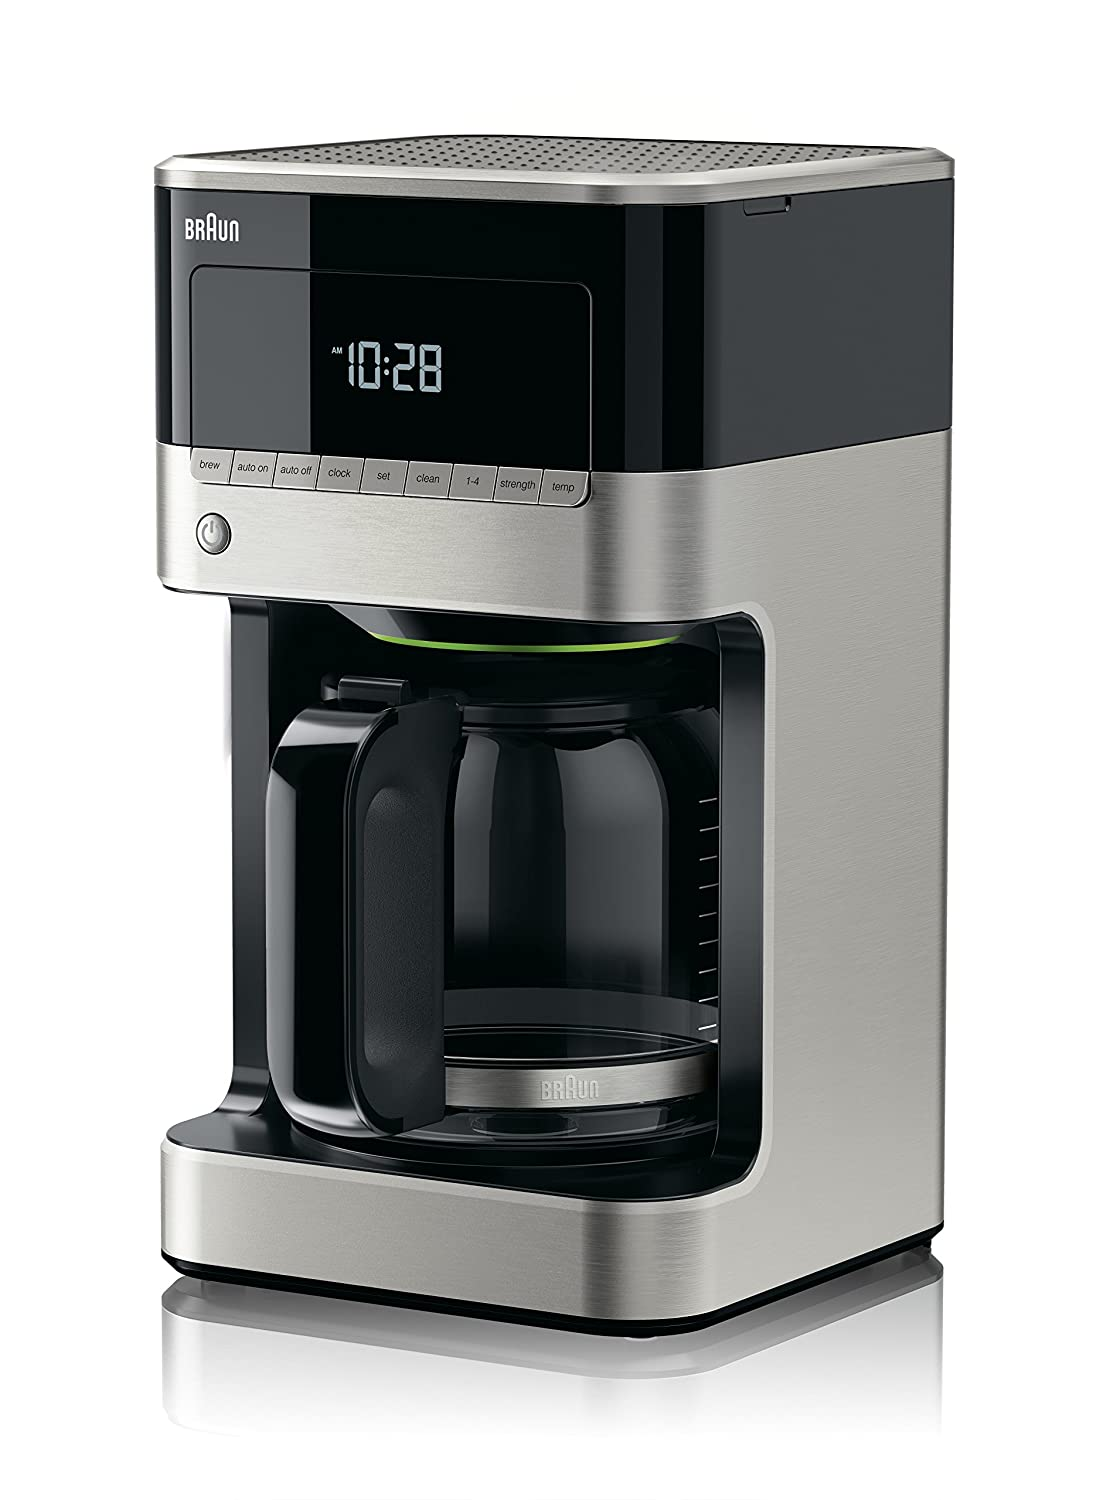 Amazon.com: Braun KF7150BK Brew Sense Drip Coffee Maker, Black: Kitchen &  Dining